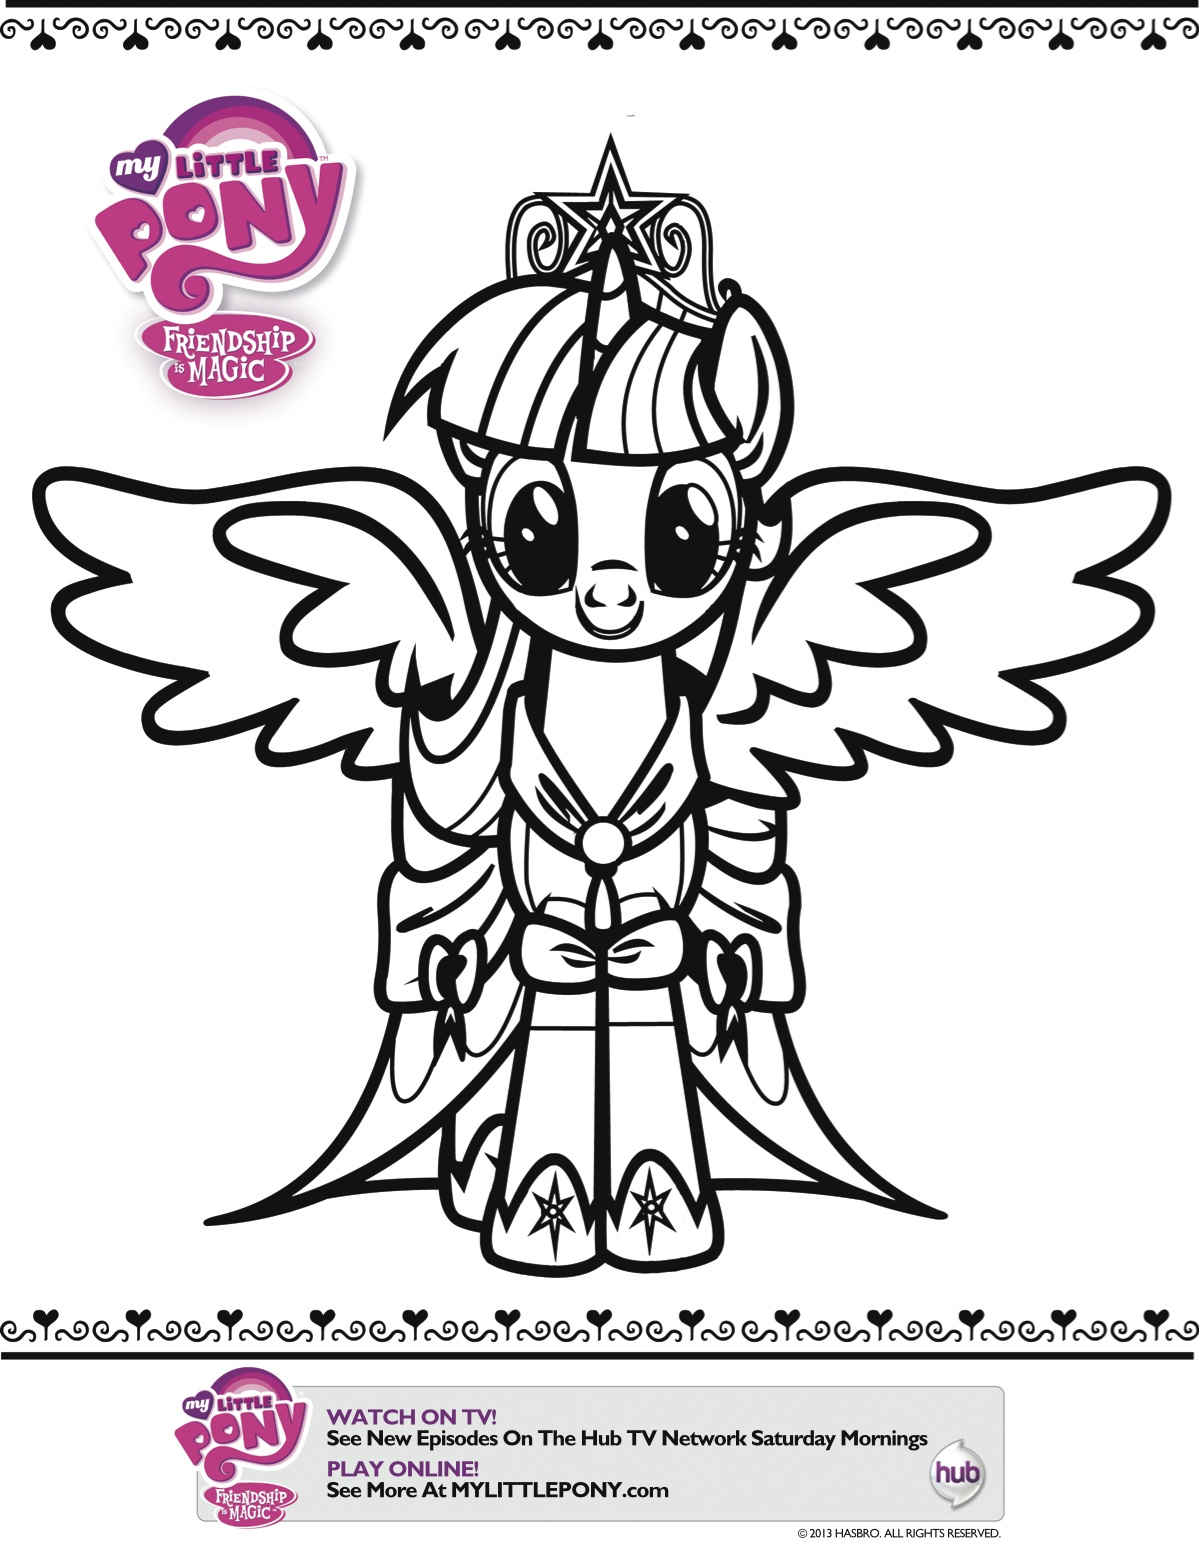 Coloring Pages Of Princess Twilight Sparkle : Twilight sparkle coloring sheet reelmama